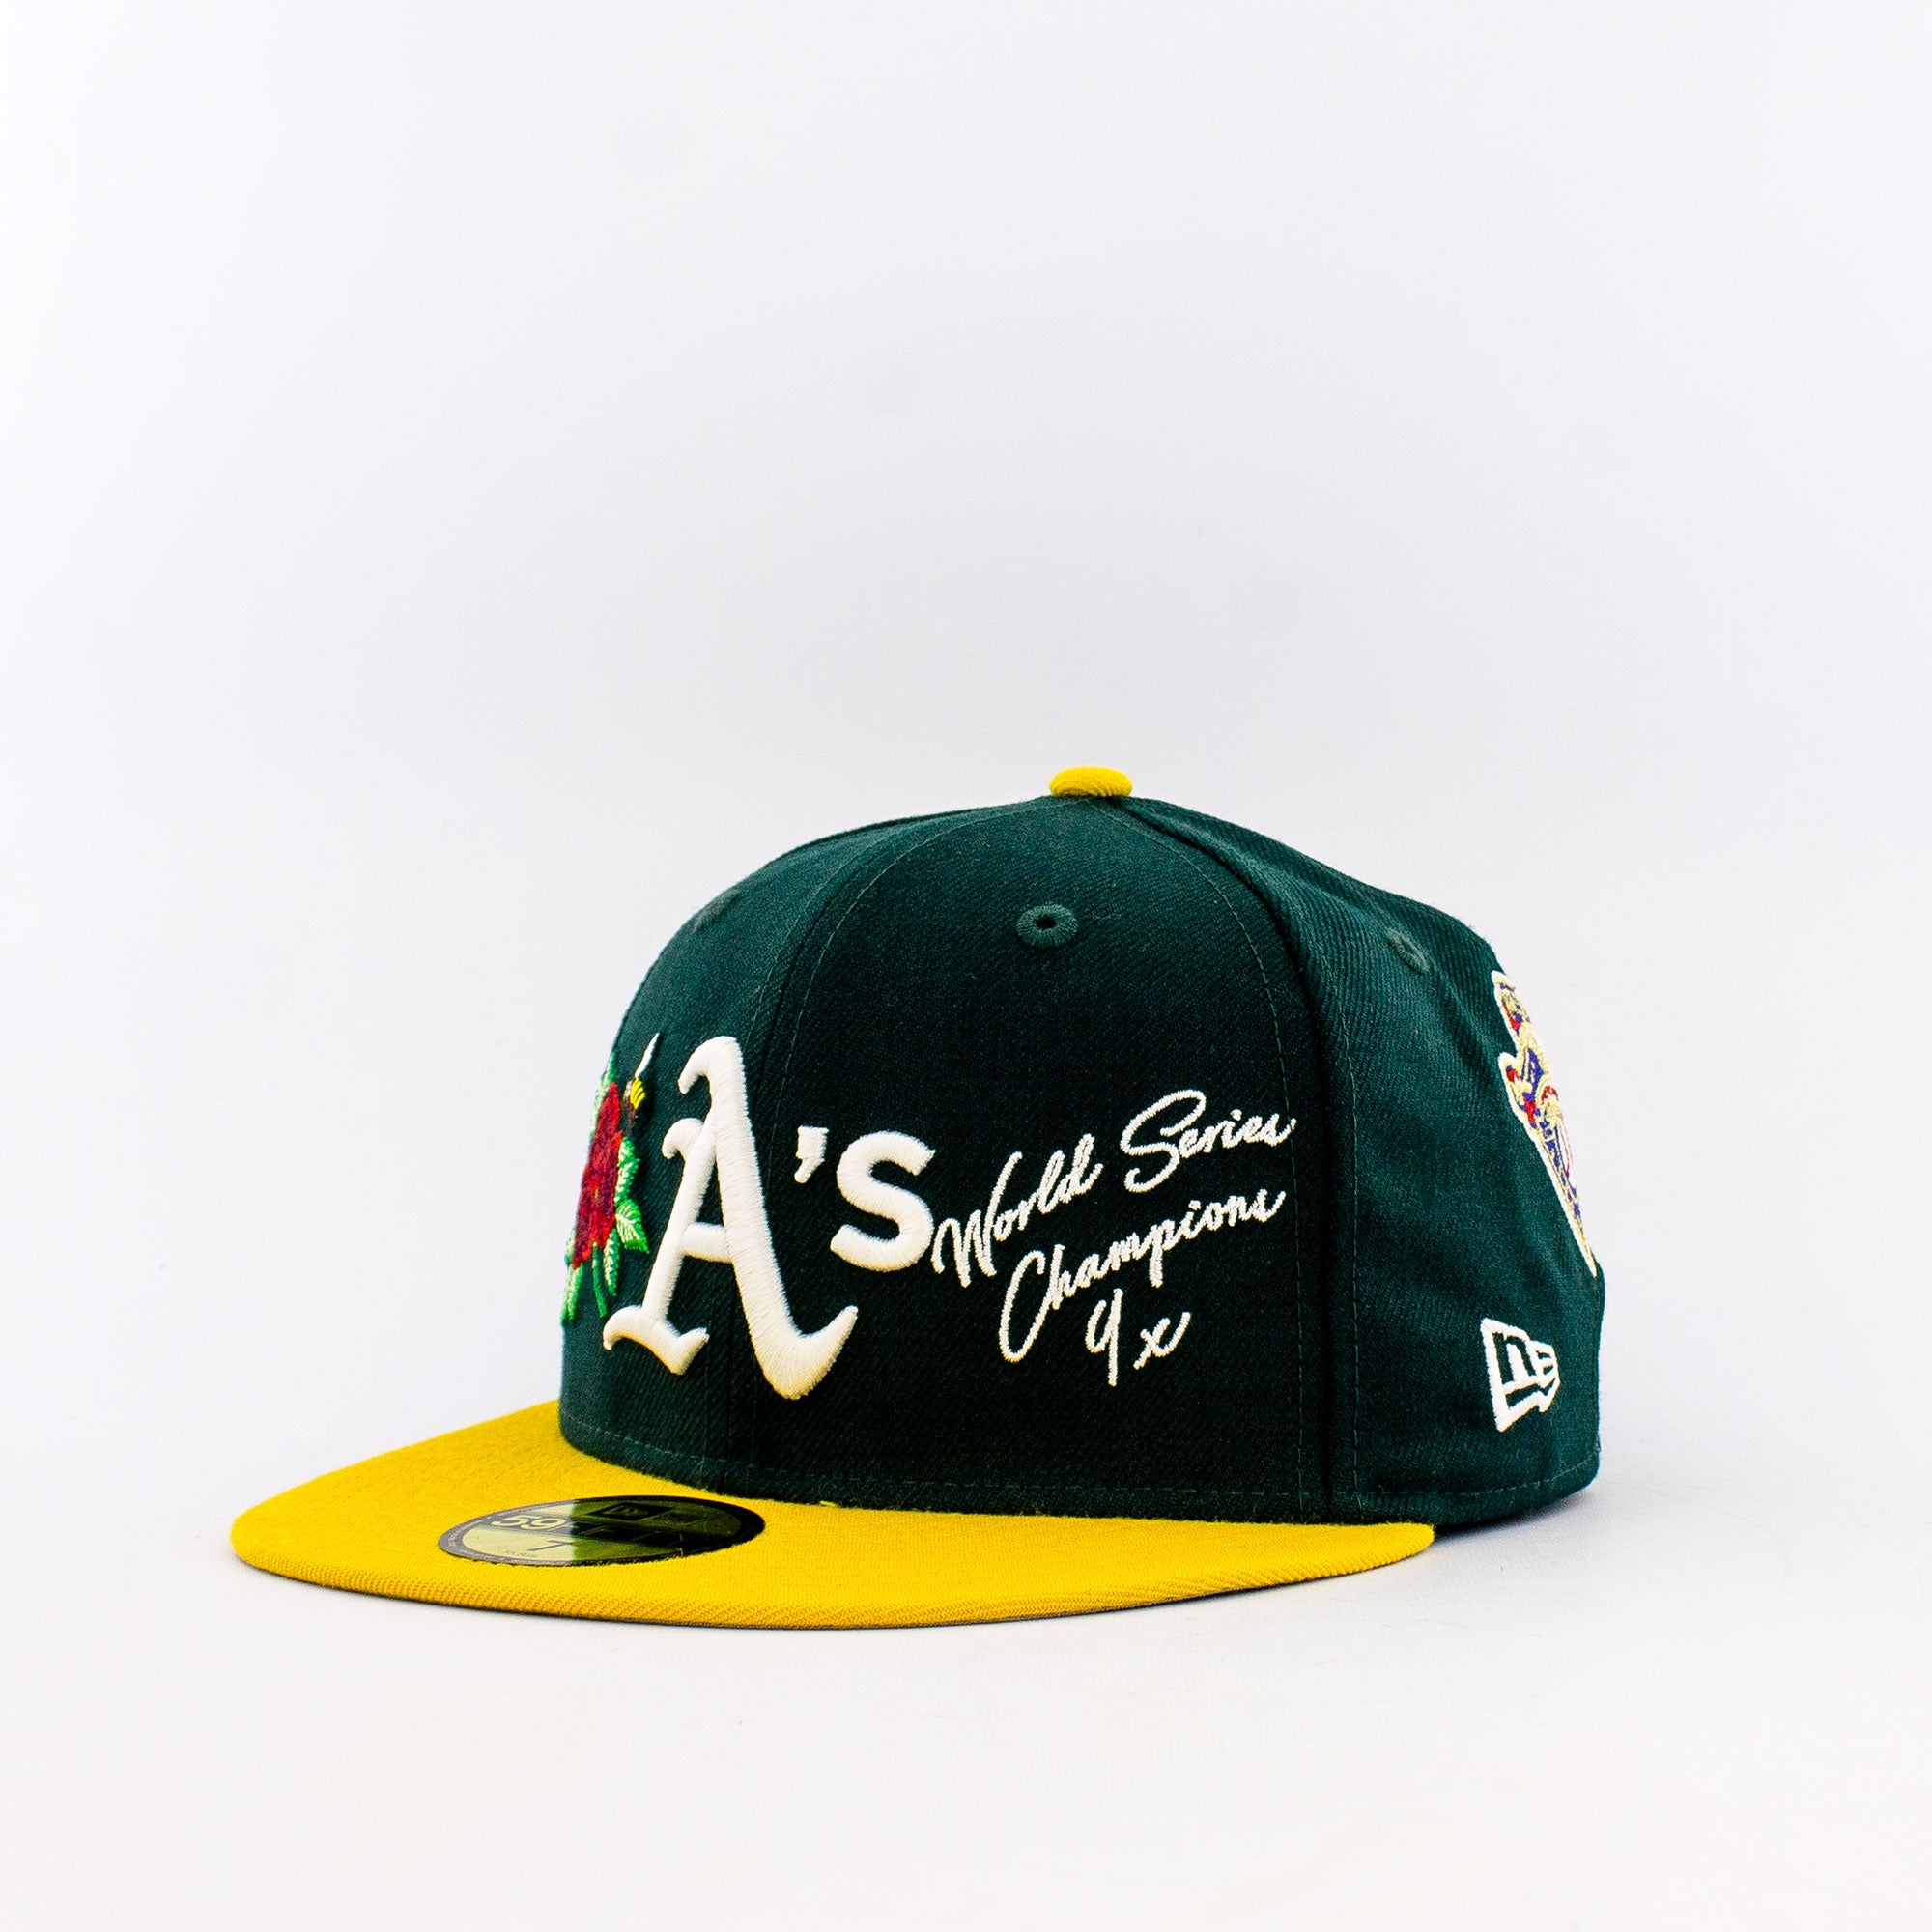 New Era MLB Oakland Athletics 59Fifty World Champions Fitted Hat